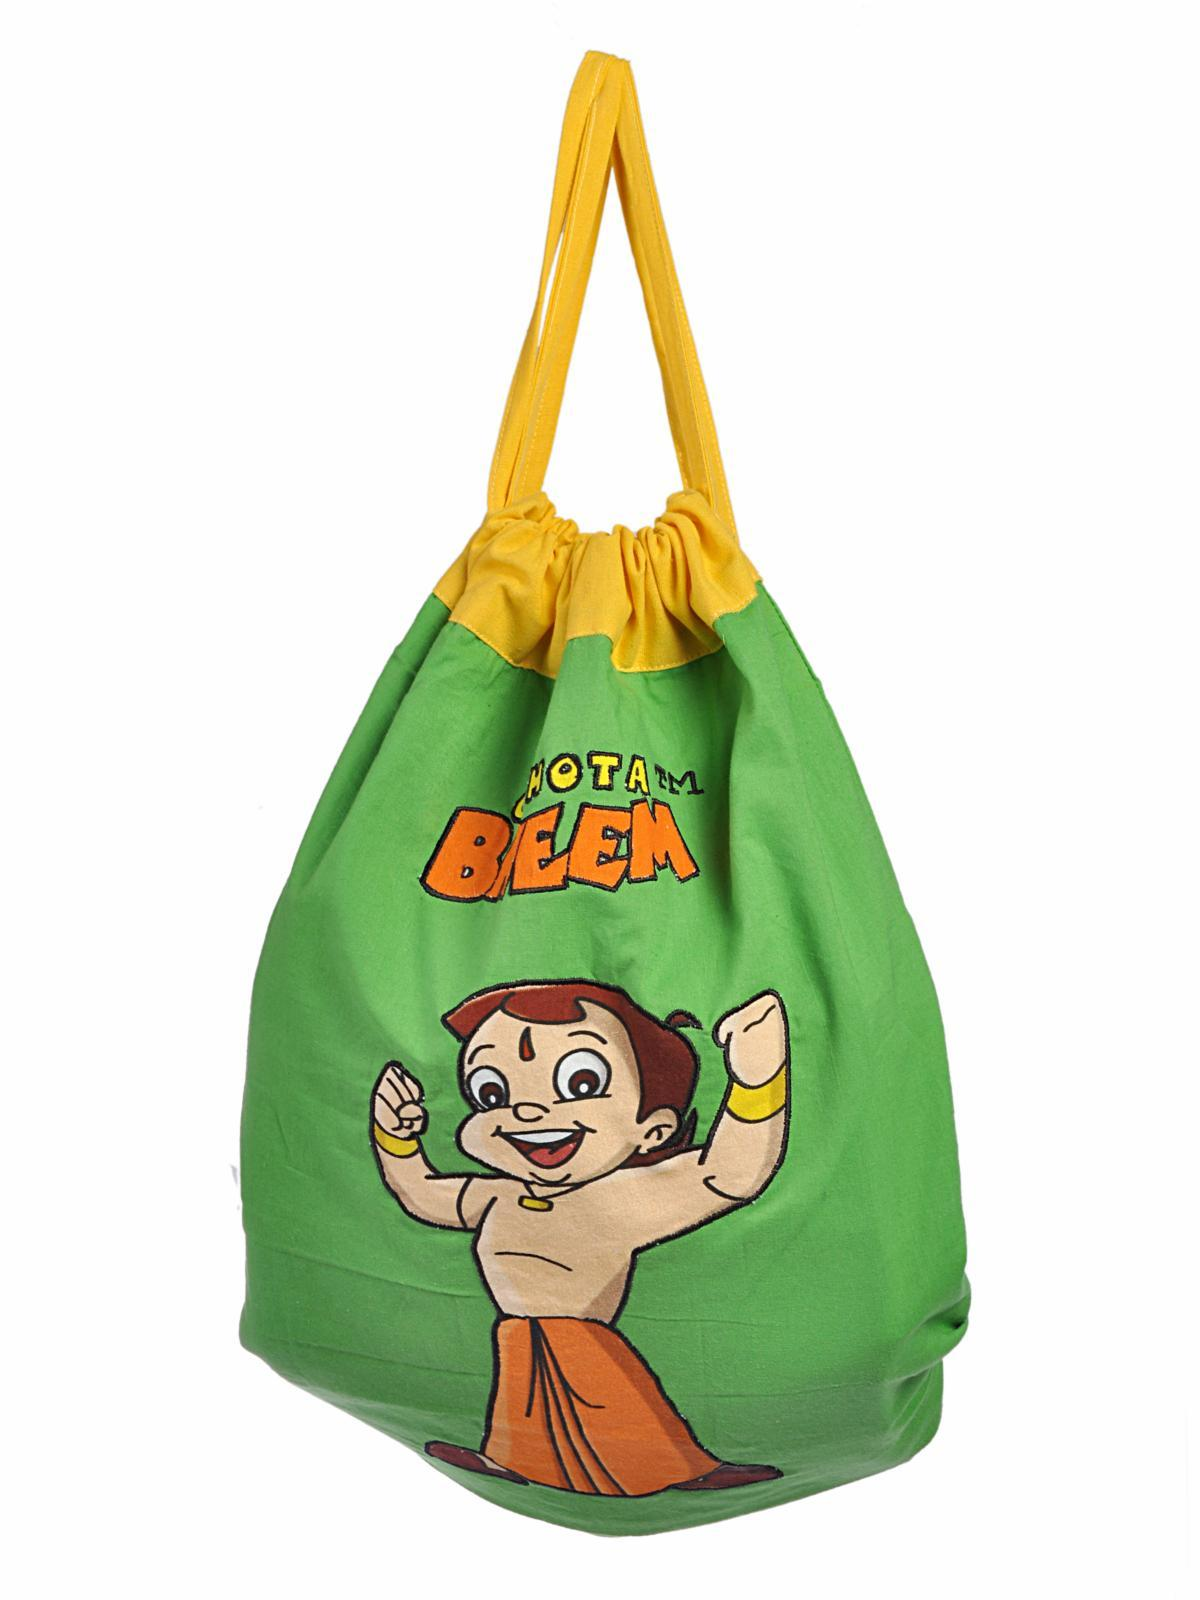 chota bheem: chhota bheem activity bag, jungle, green at hoopos.e - 3mik.com